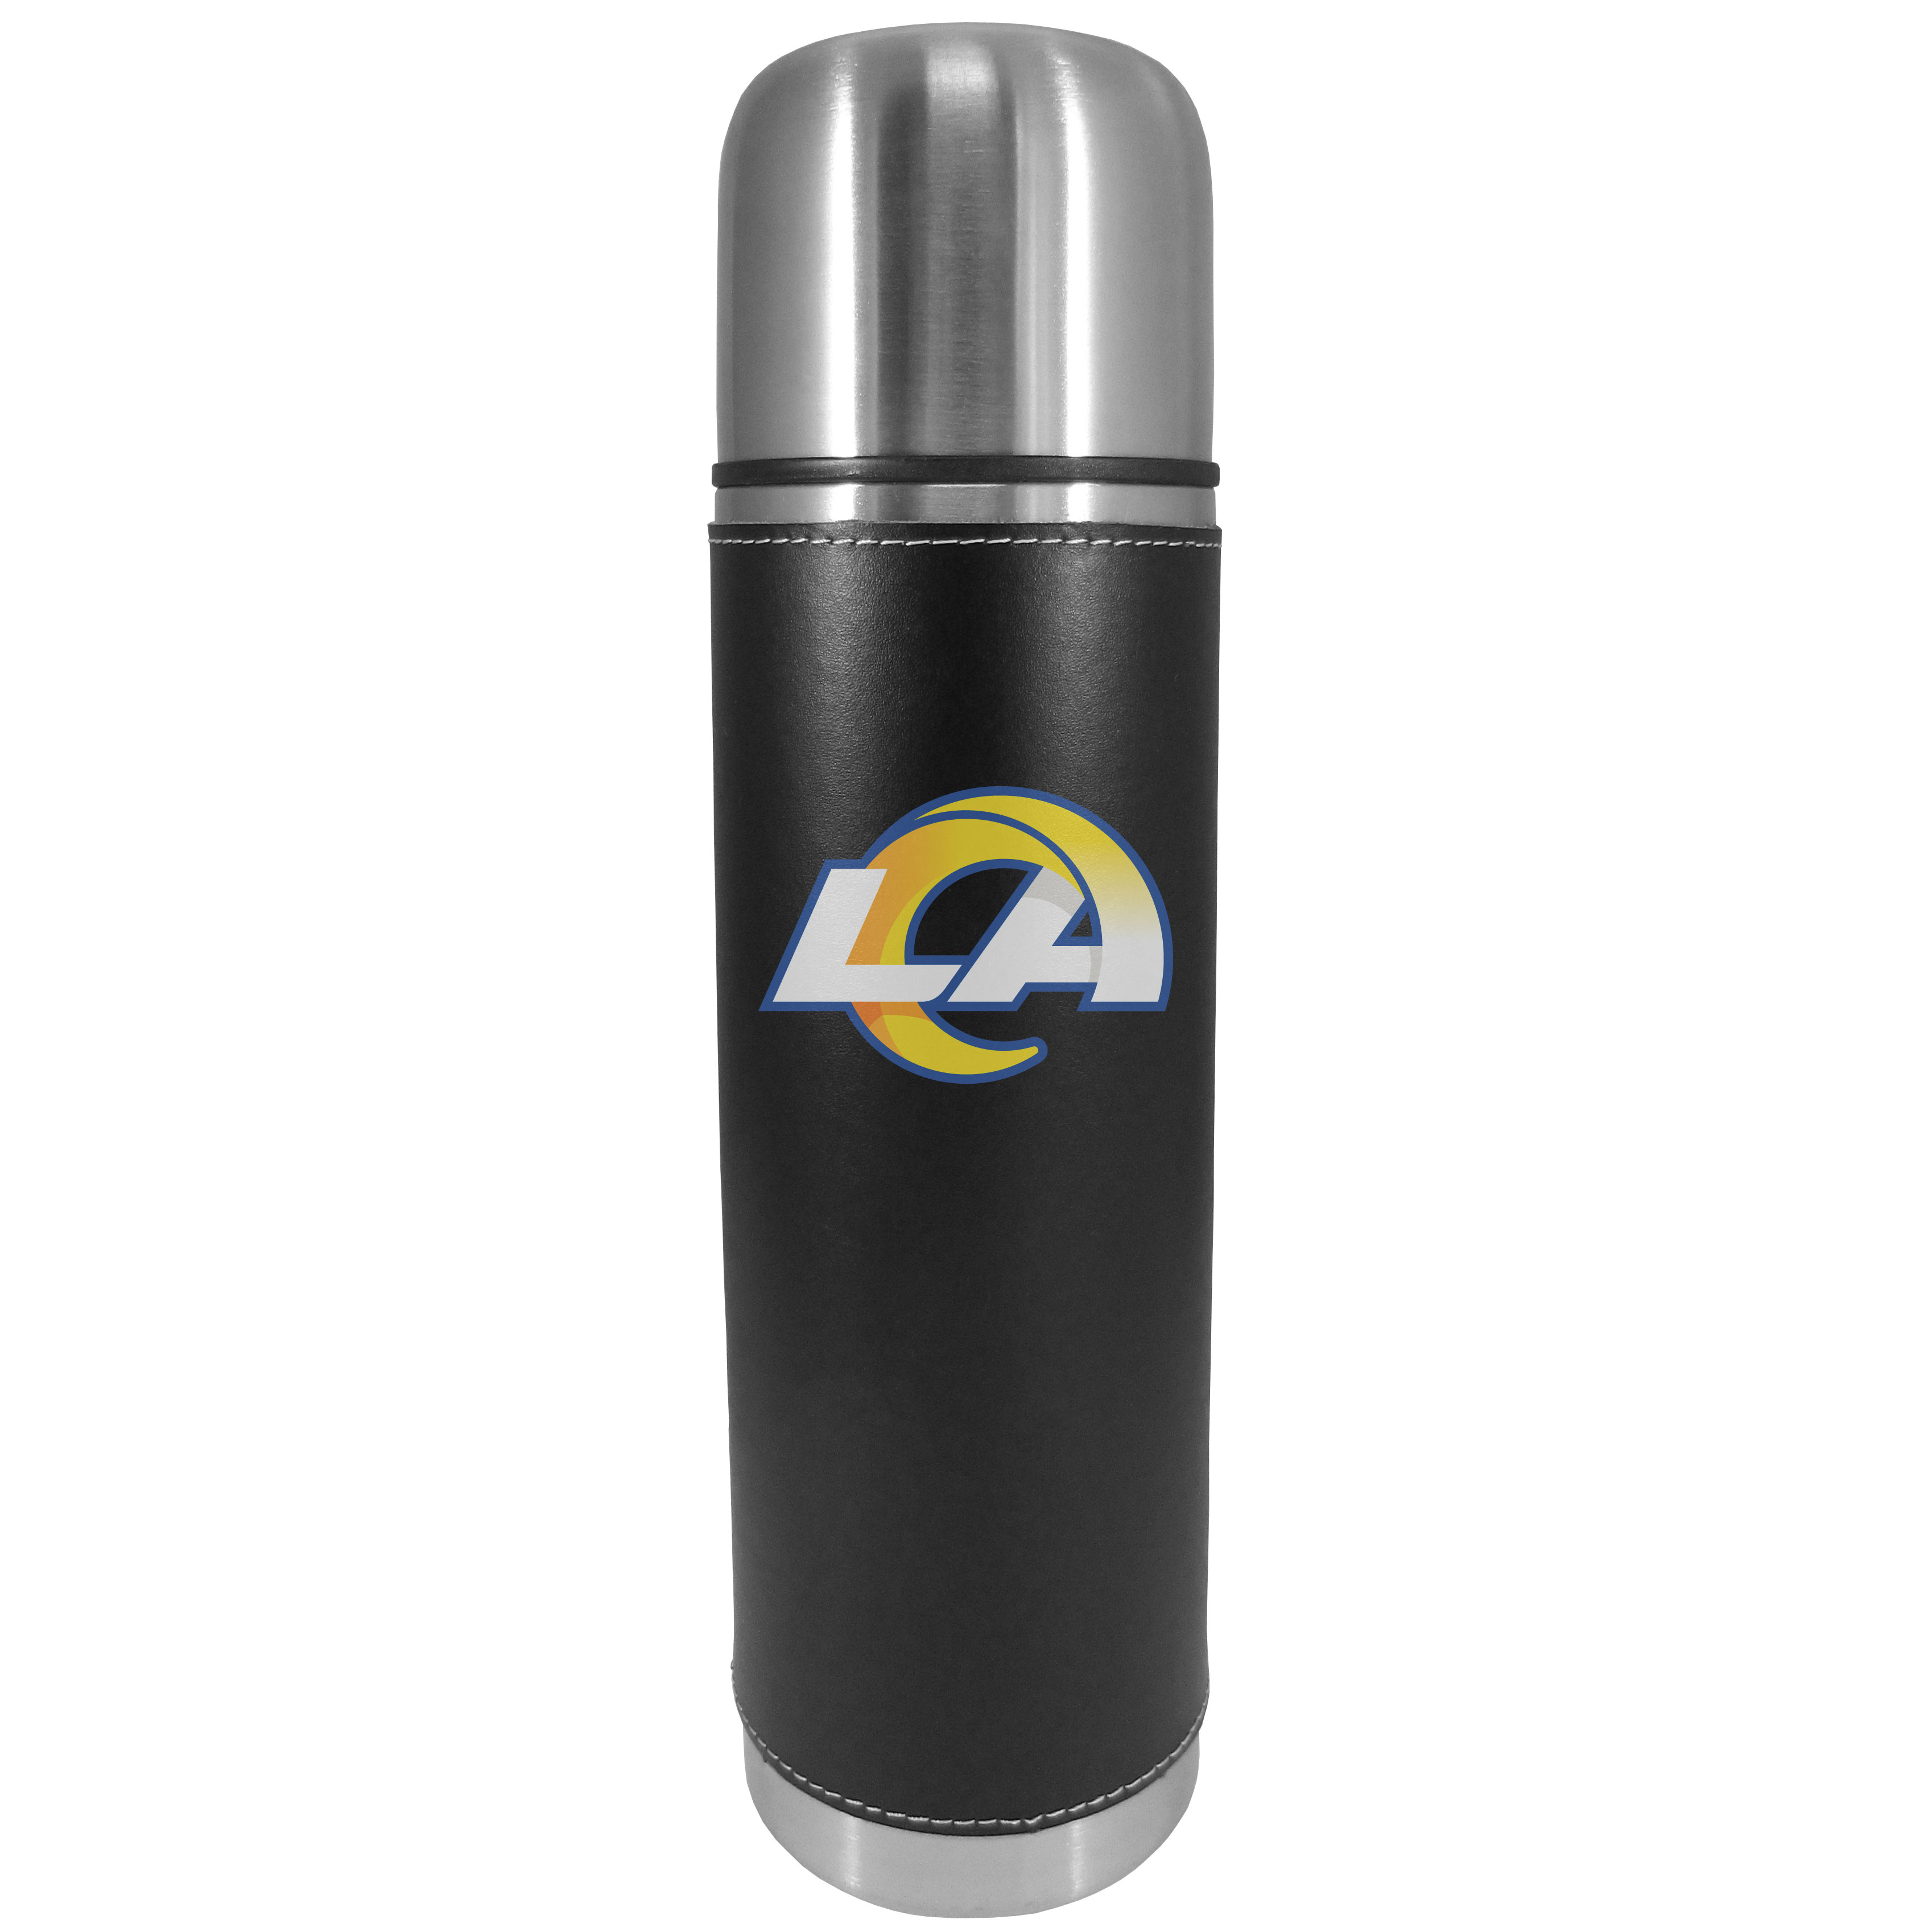 Los Angeles Rams Graphics Thermos - This attractive, 26 ounce Los Angeles Rams thermos is a great way to keep your beverages hot while on the go. The 11 inch tall, vacuum sealed thermos features a black vinyl wrap with stitched details and a digitally printed team logo. The lid screws on and can be used as a cup.